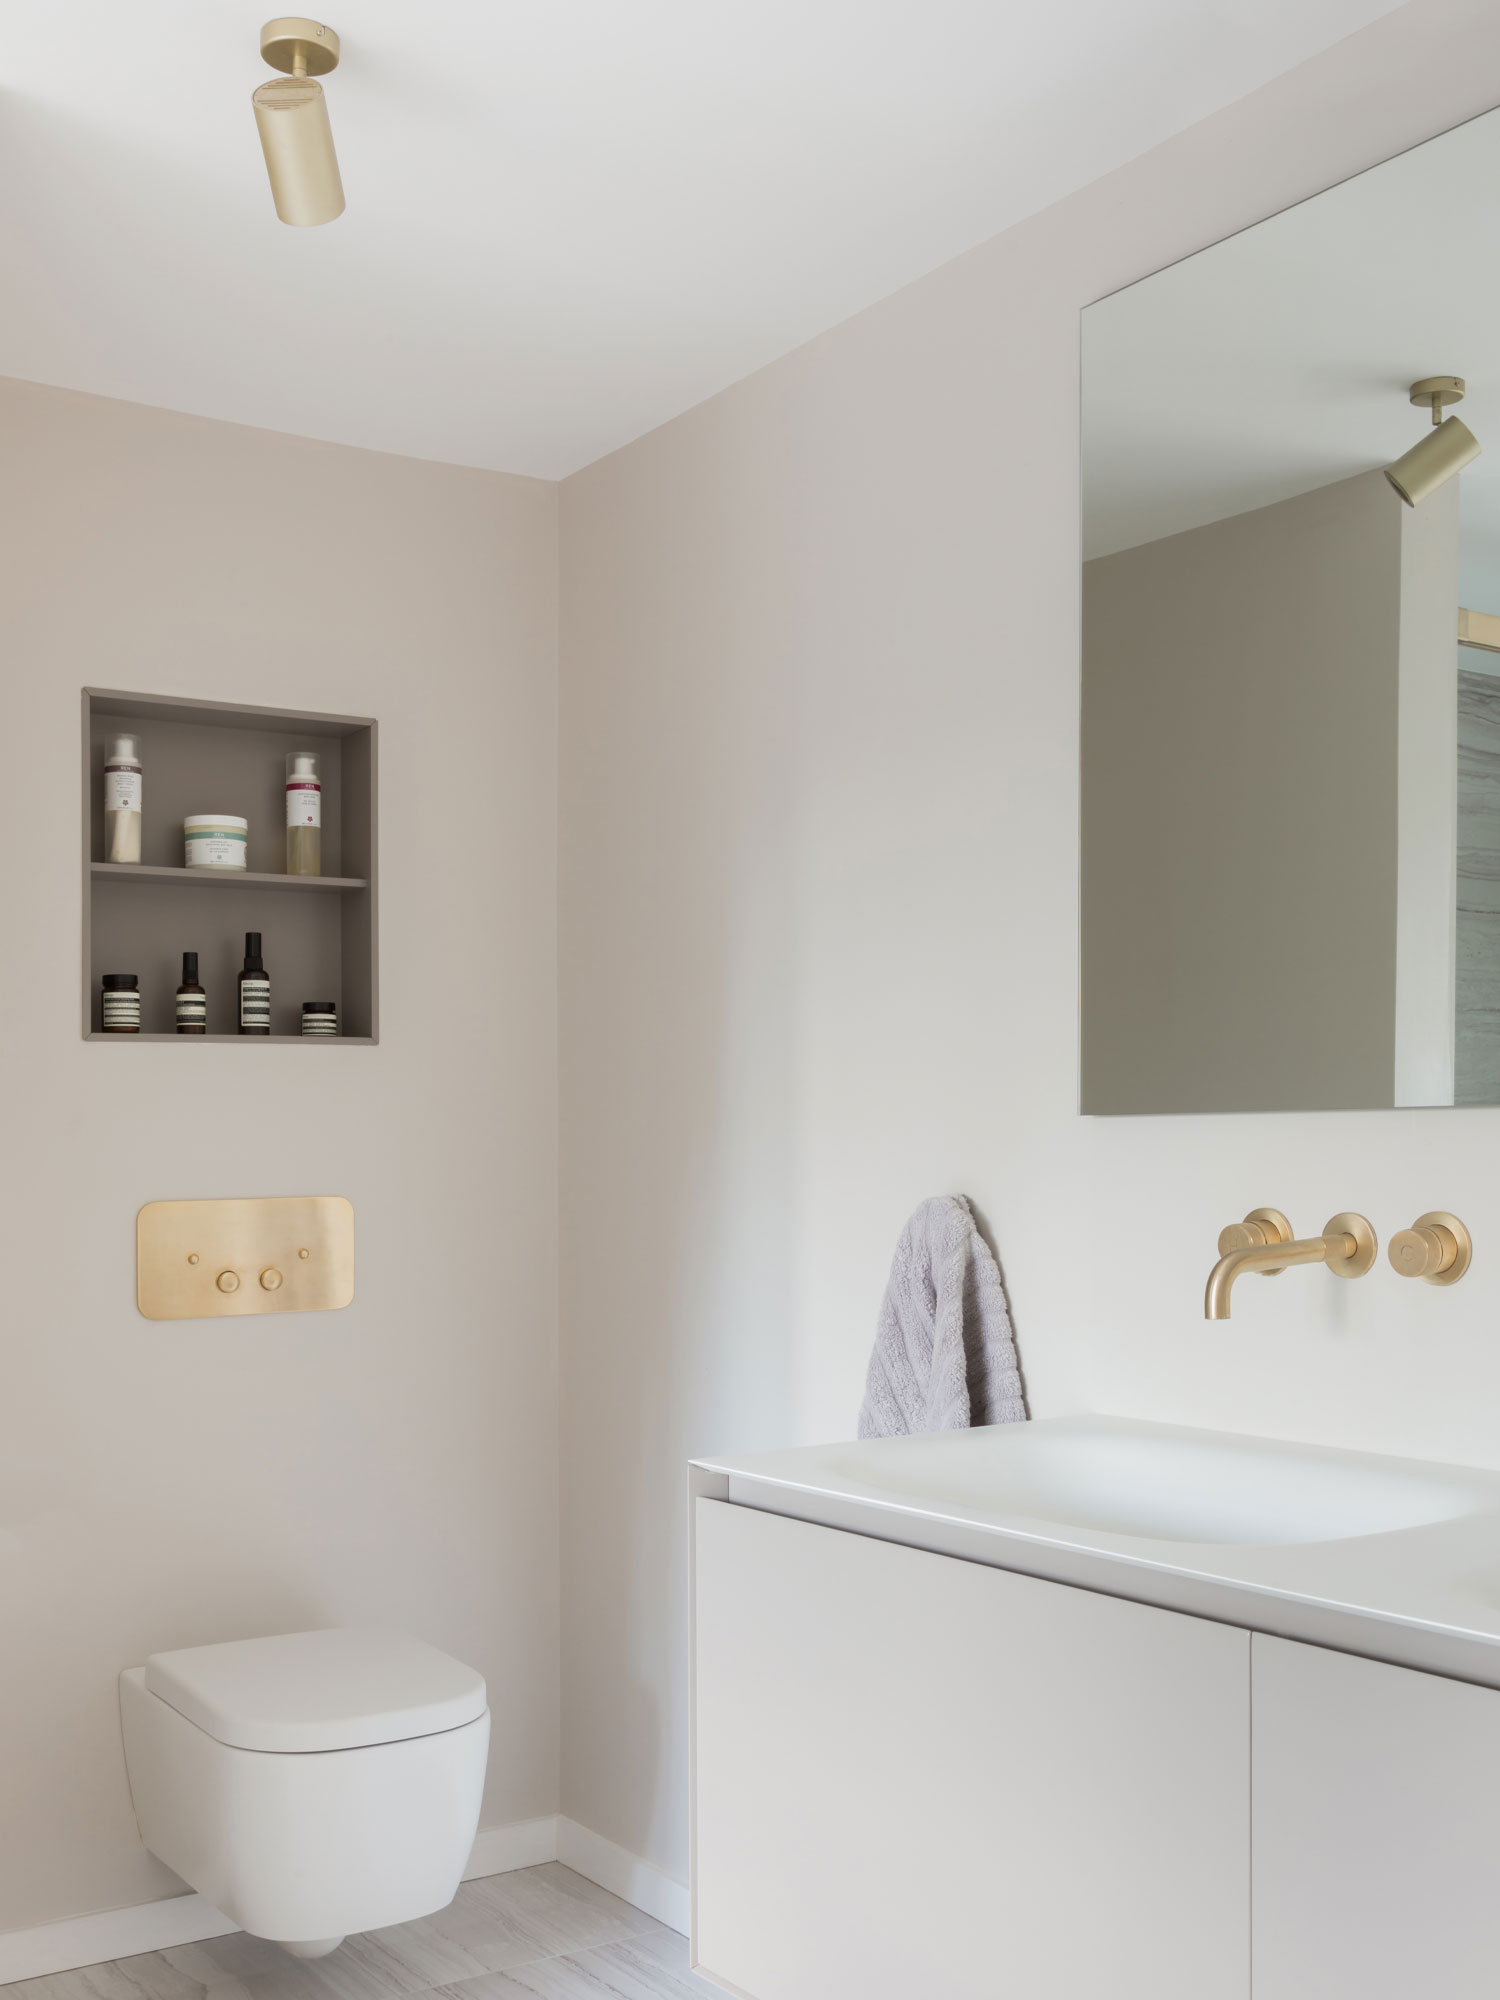 West One Bathrooms Inspiration How to plan storage in a bathroom image1b